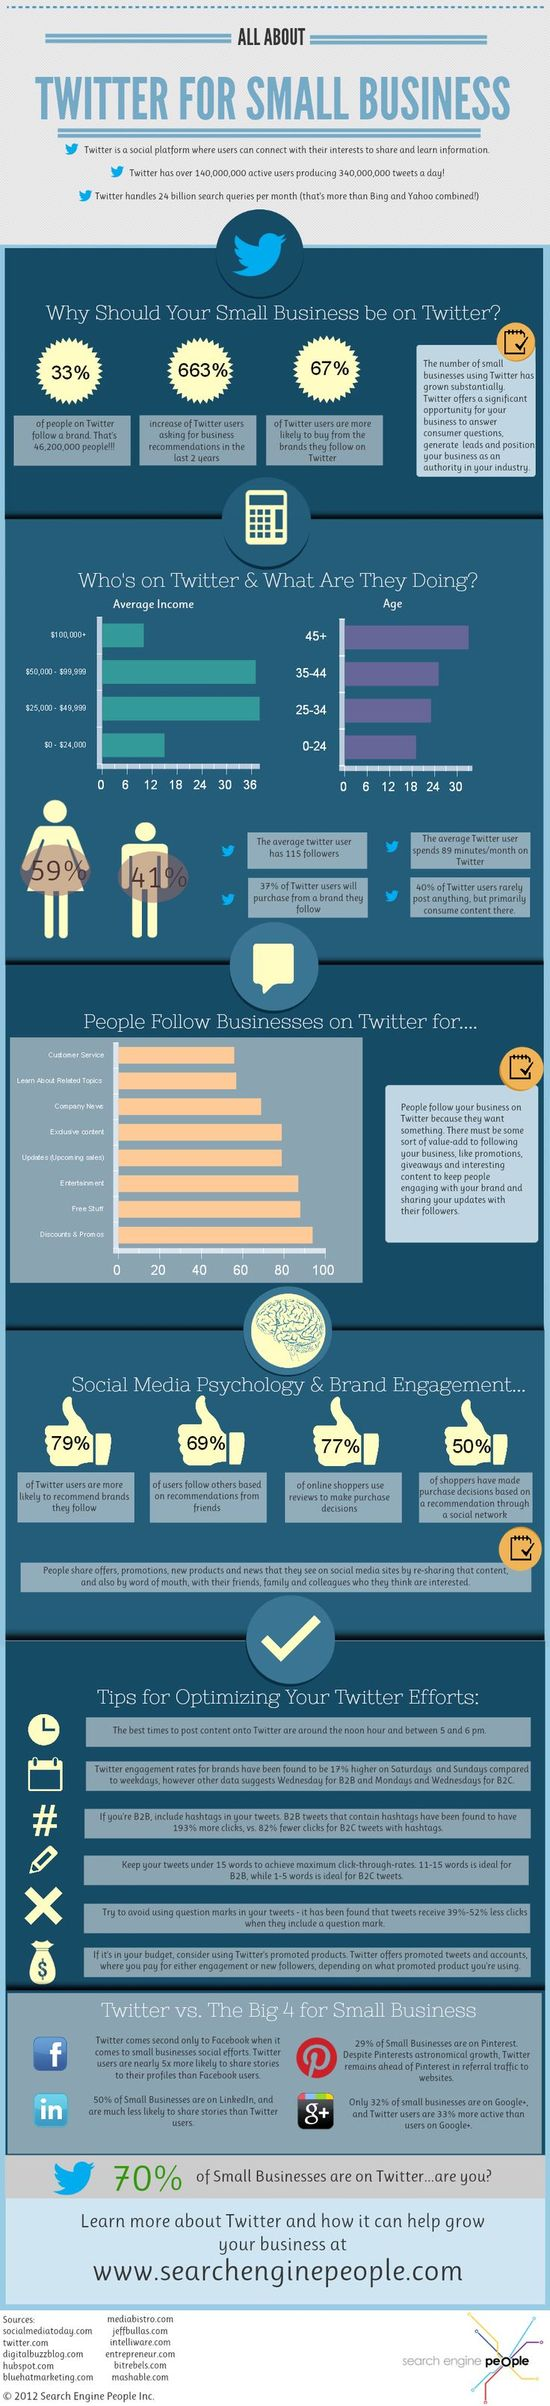 Twitter For Small Business: Stats, Facts & Tips [INFOGRAPHIC]